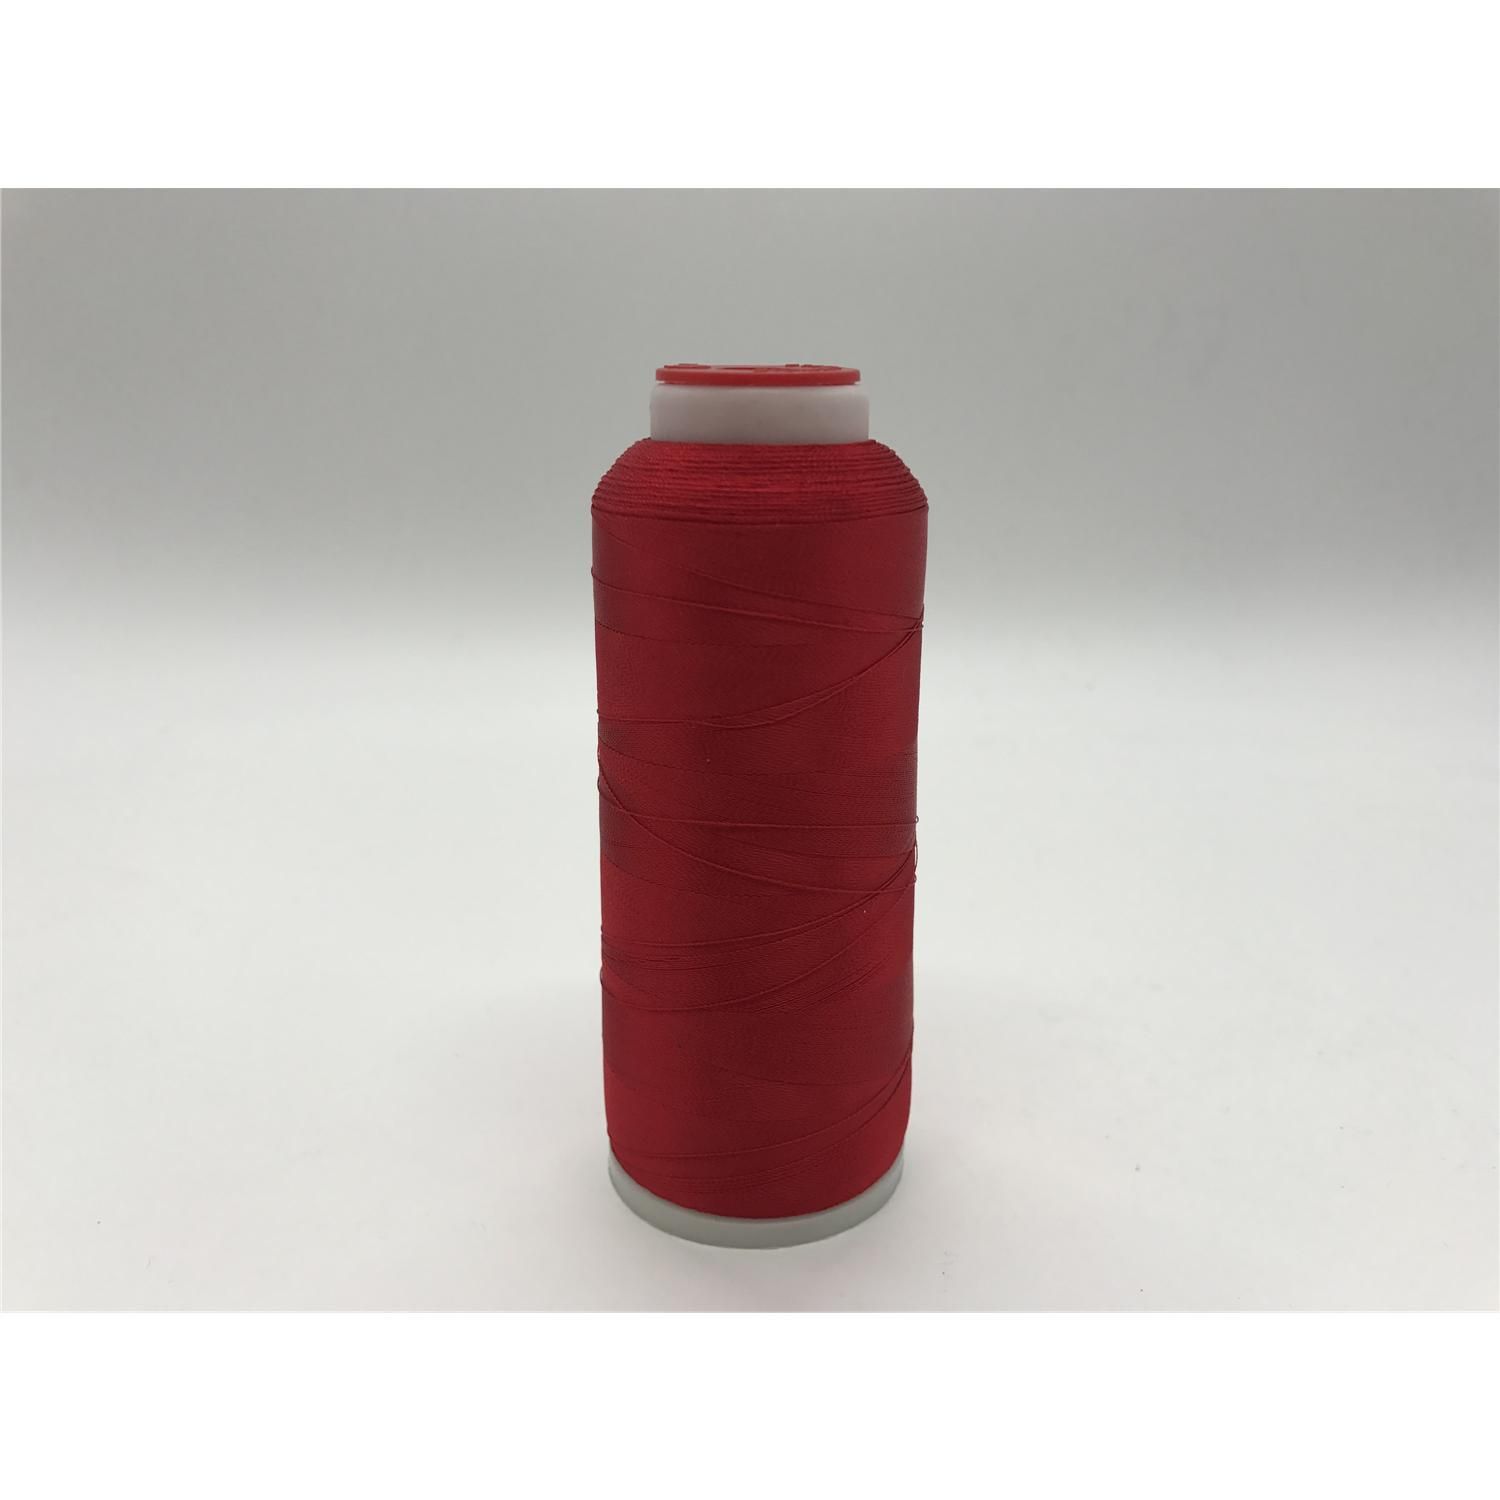 Shanfa 100% Rayon Embroidery Thread